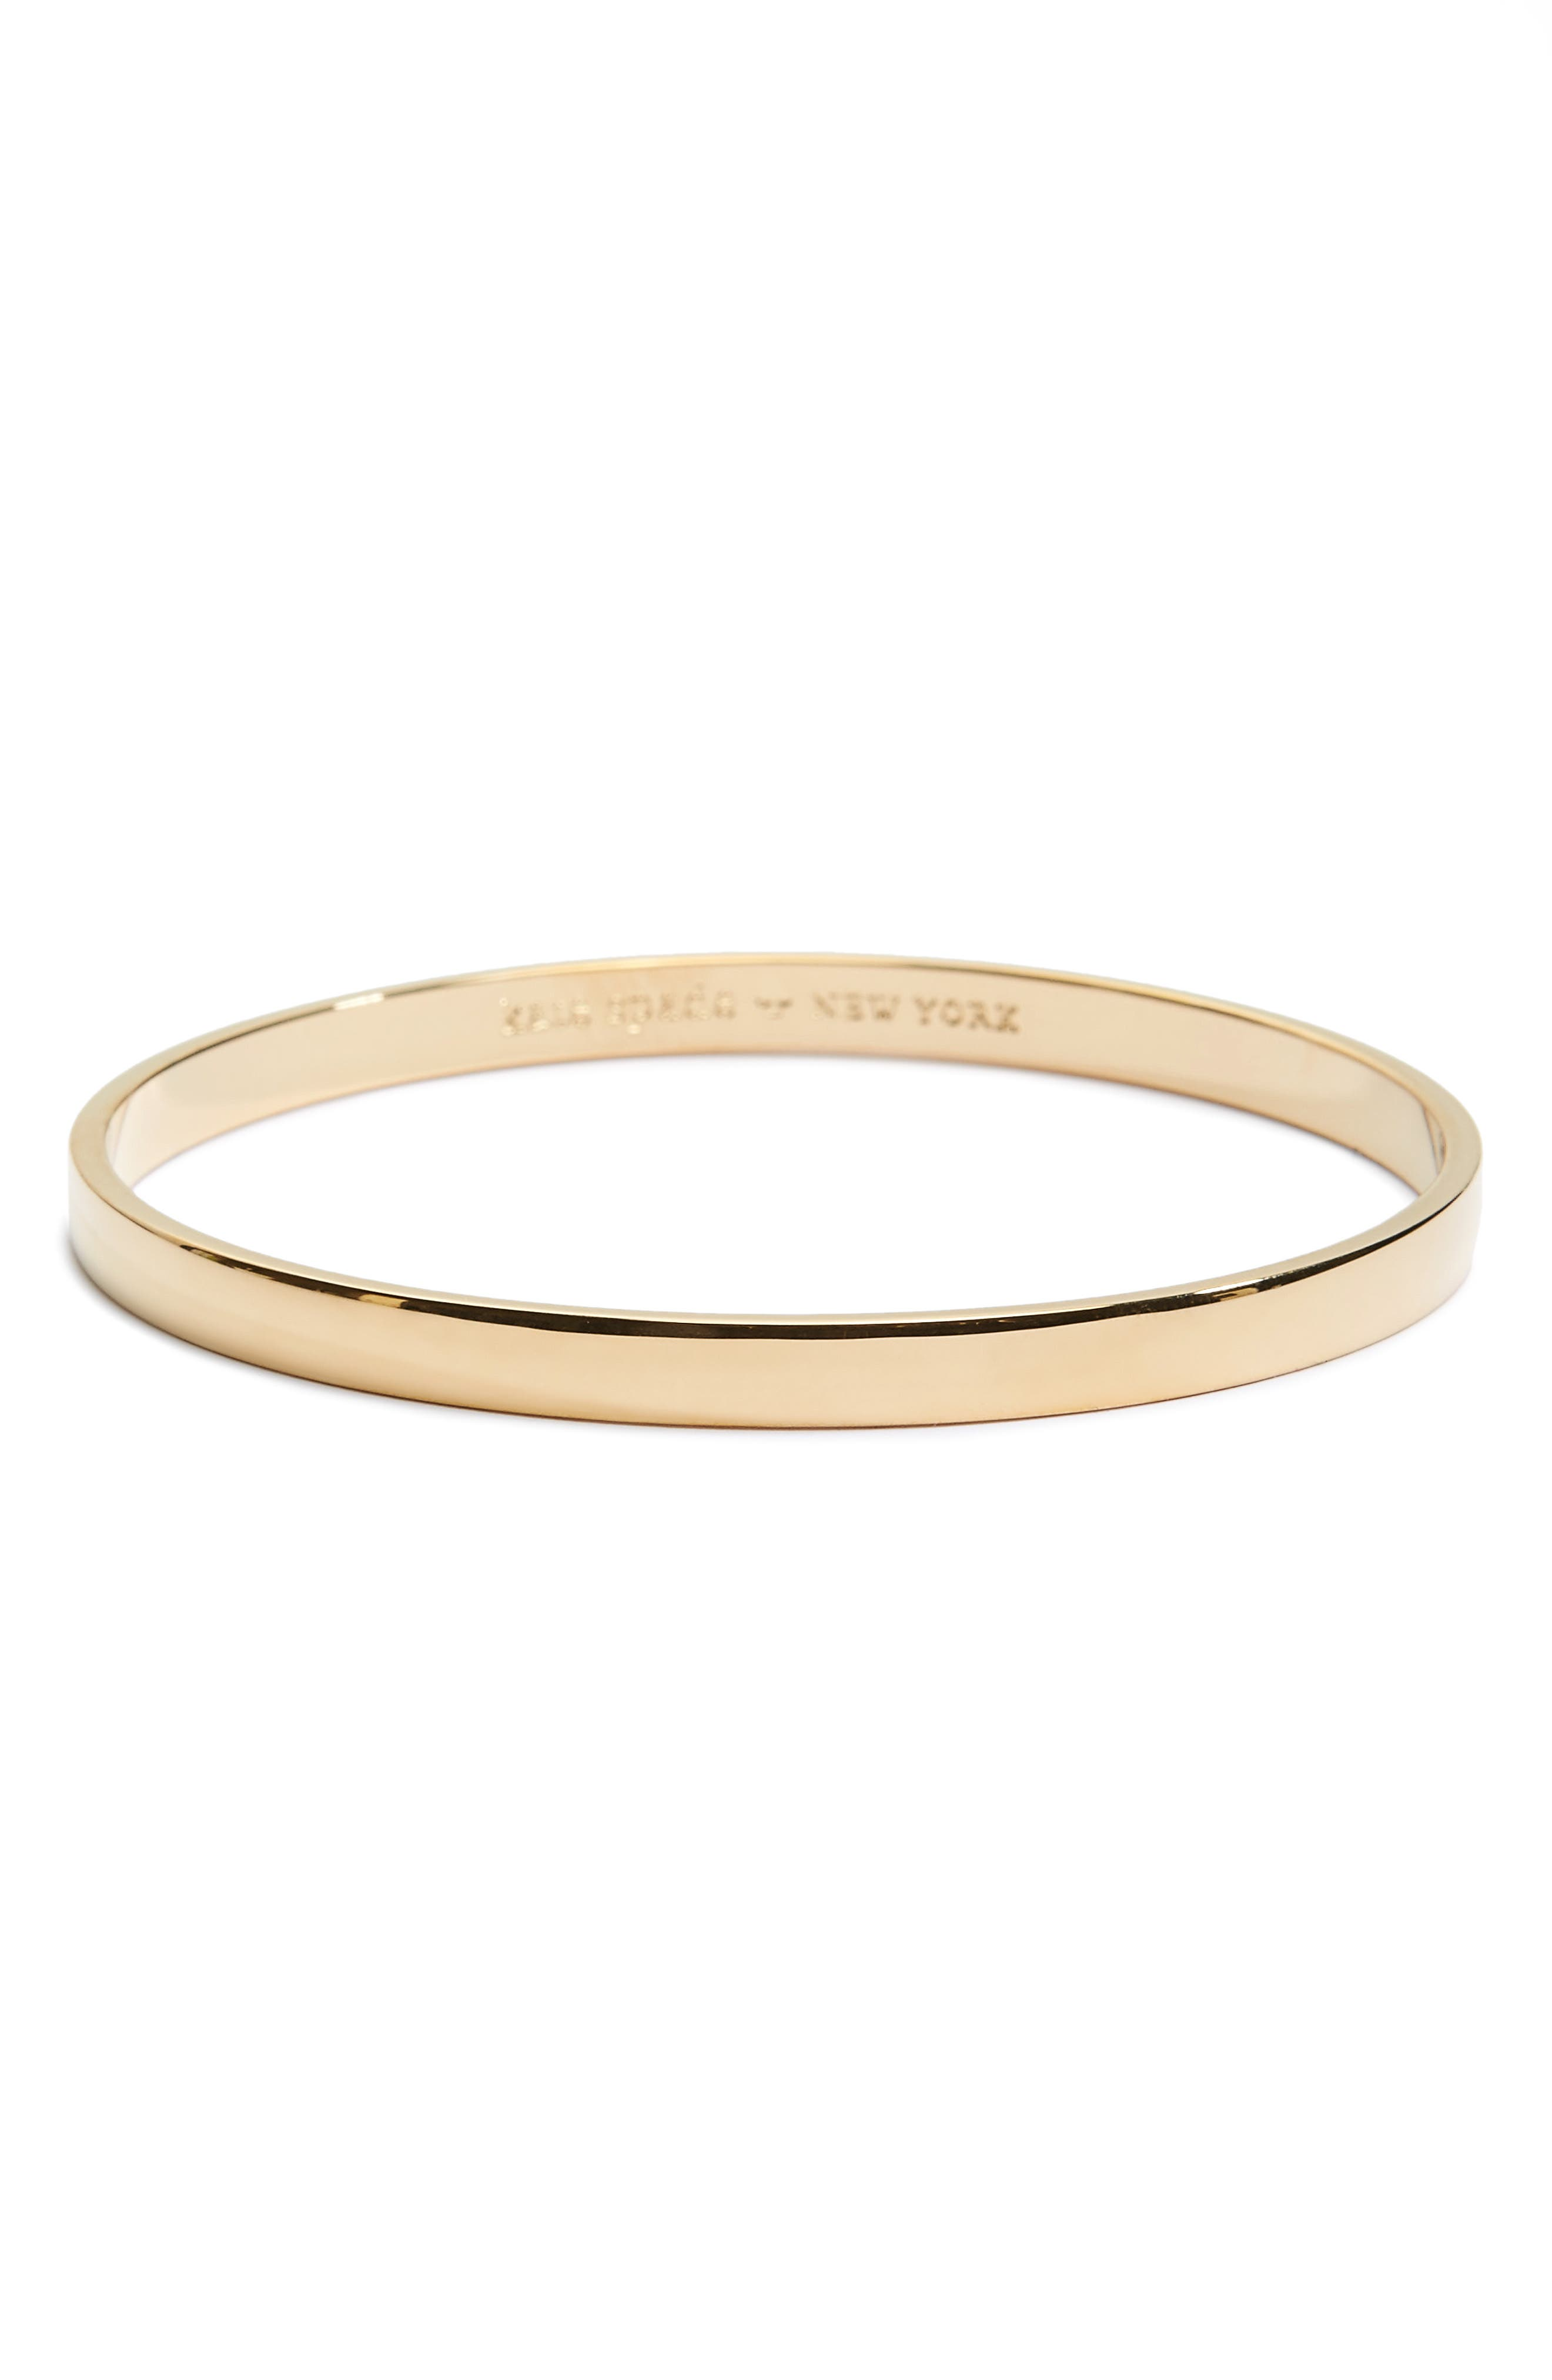 A slim, stackable bangle plated in lustrous 12-karat gold hides a meaningful \\\